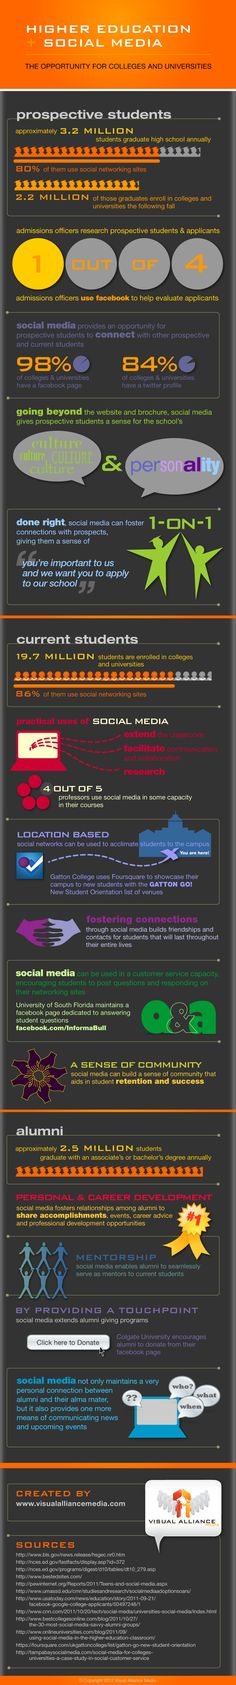 INFOGRAPHIC-Social-Media-in-Higher-Education-Colleges-Universities-by-Visual-Alliance-Media.png (648×4627)